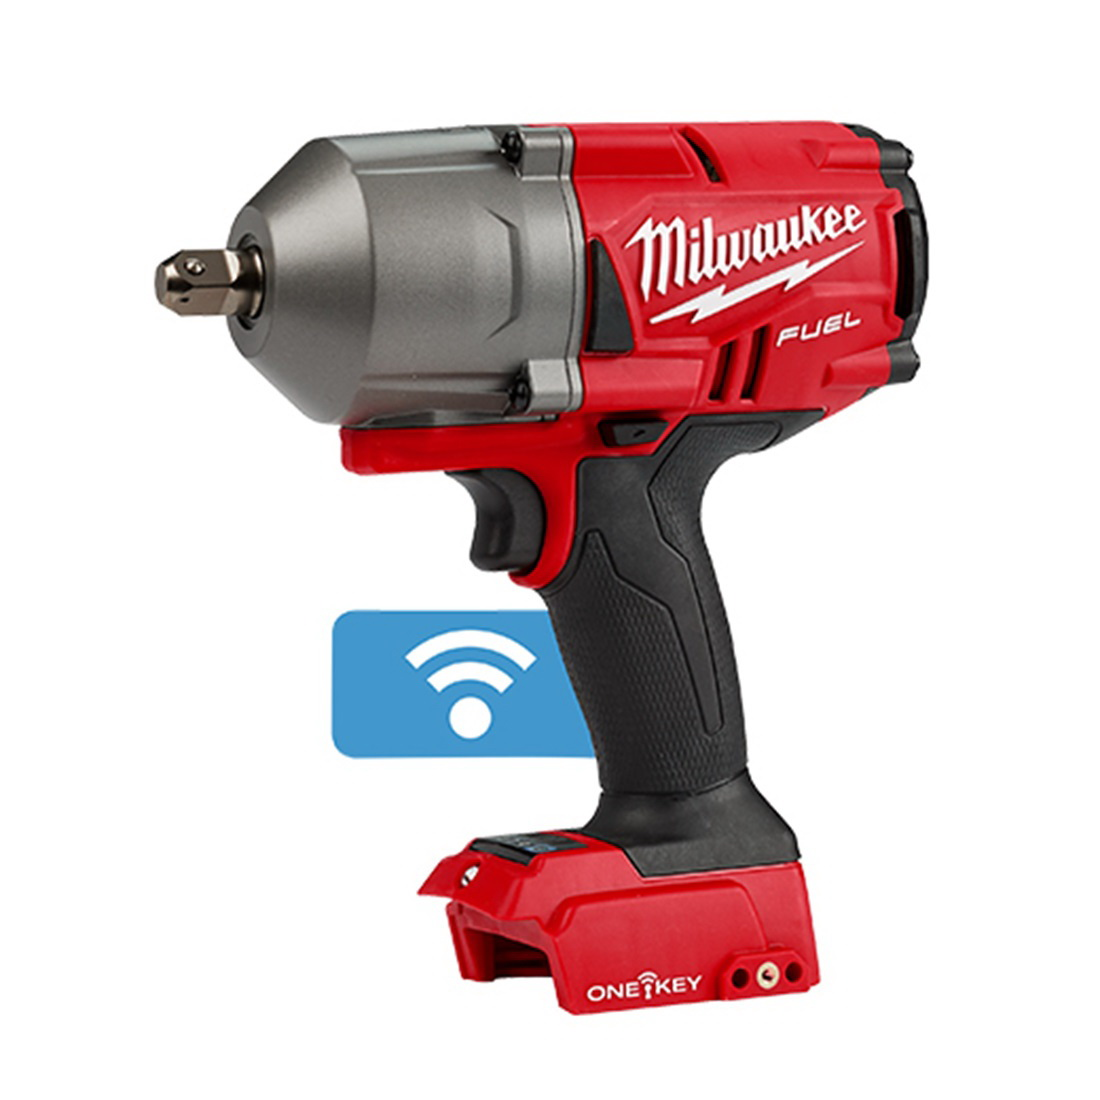 M18 FUEL ONE-KEY High Torque Impact Wrench Skin Only with Pin Detent 1/2in 0-2400ipm M18ONEFHIWP12-0